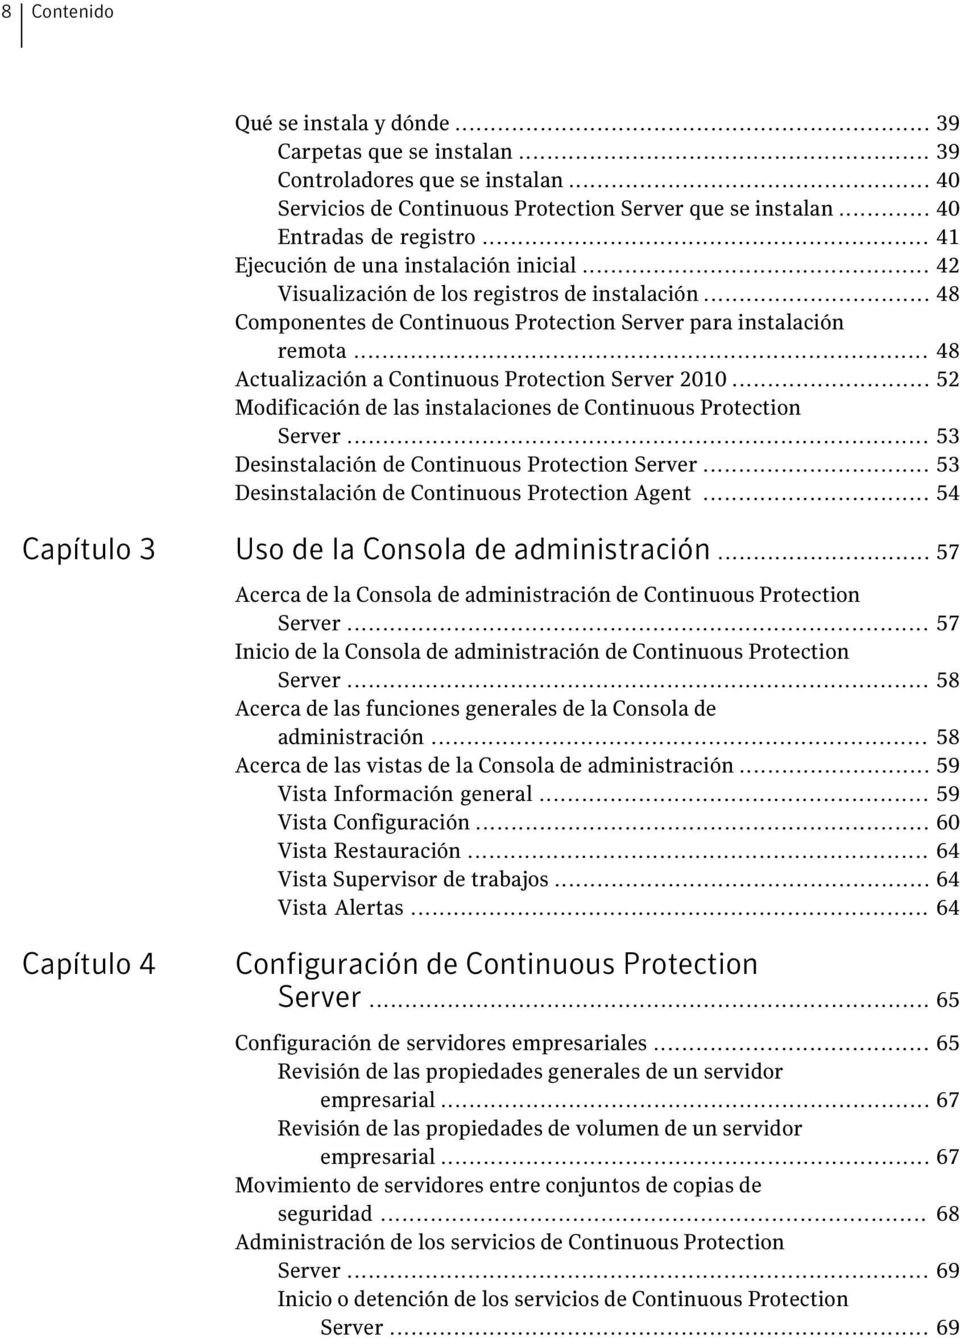 .. 48 Actualización a Continuous Protection Server 2010... 52 Modificación de las instalaciones de Continuous Protection Server... 53 Desinstalación de Continuous Protection Server.